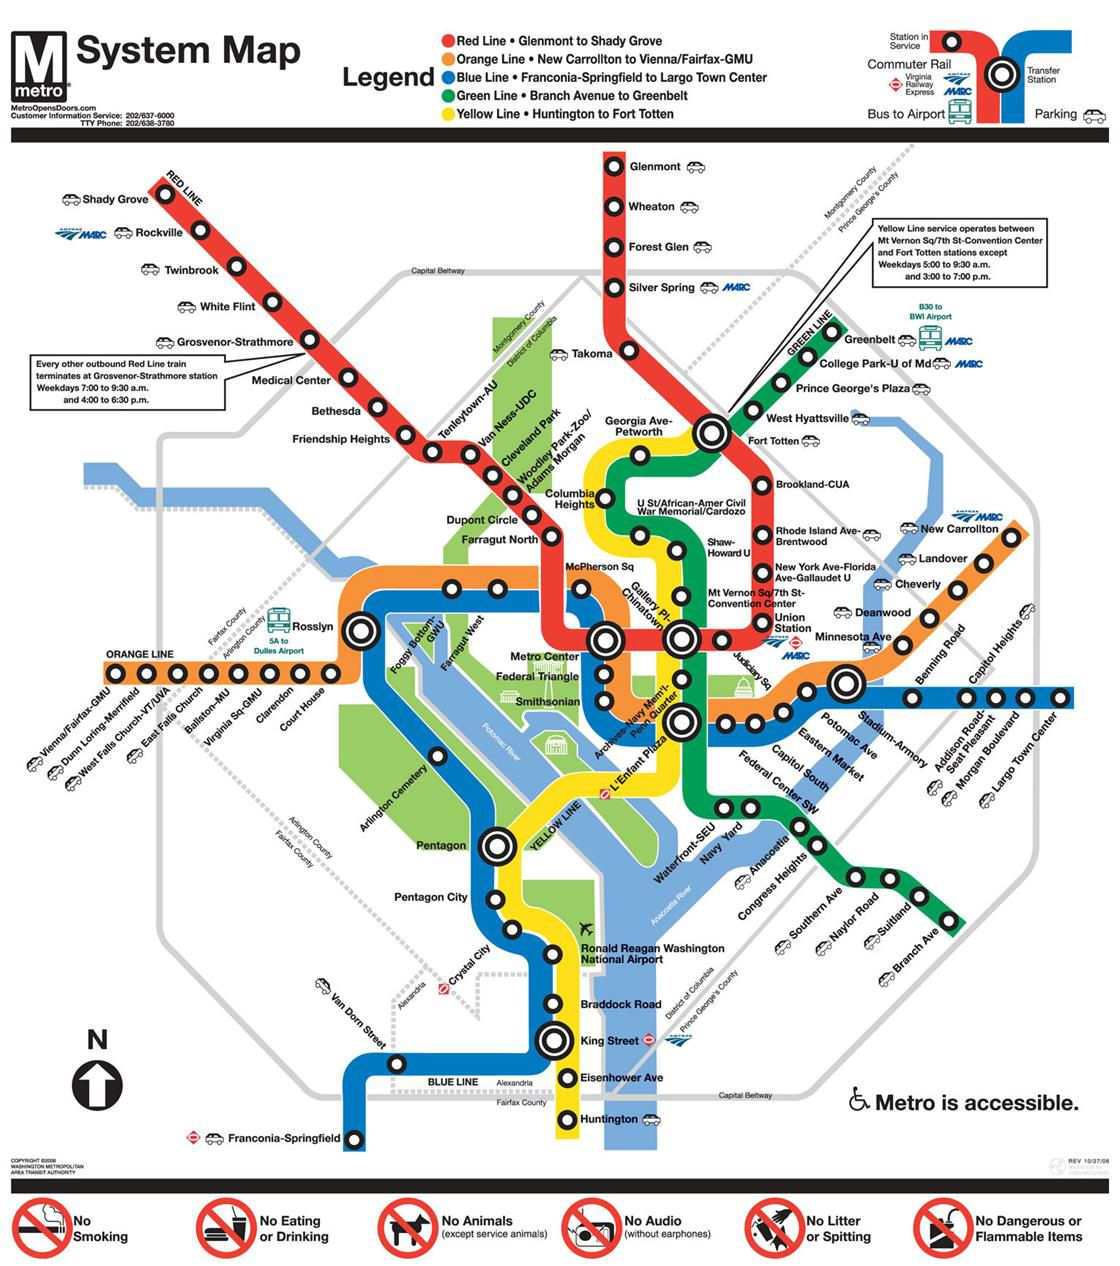 How to Make Metro Great Again - Vox